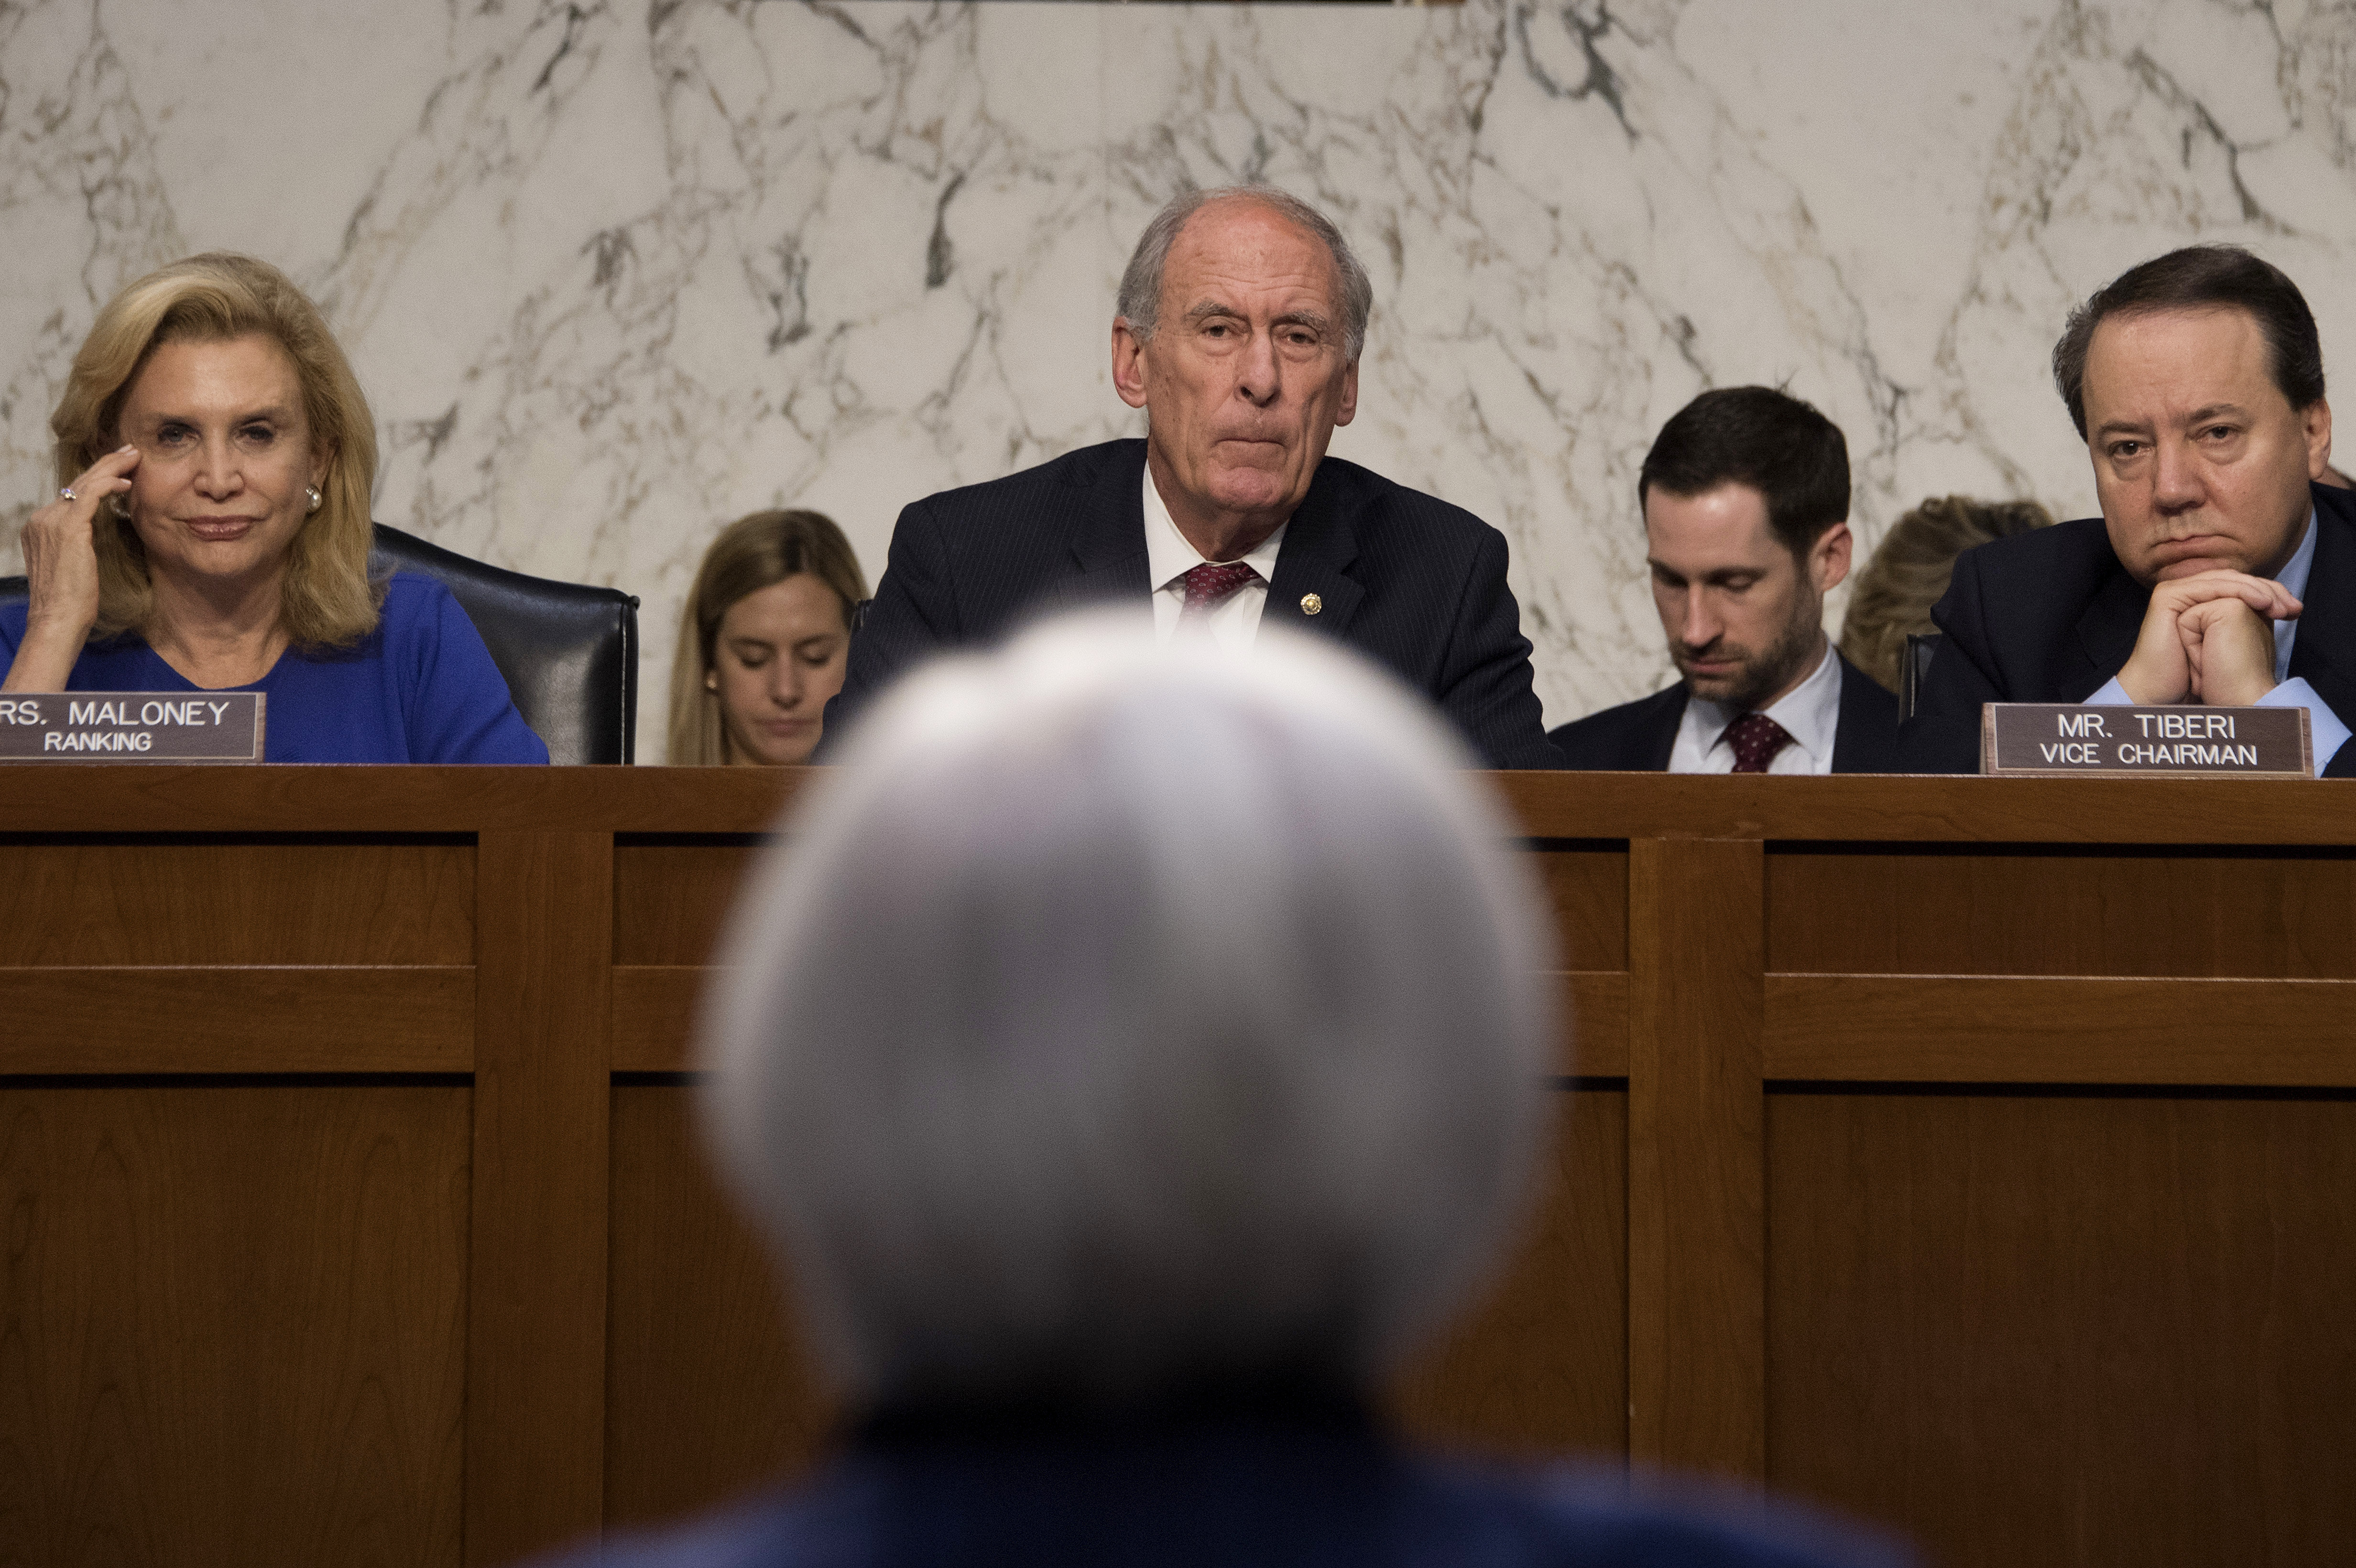 "Congresswoman Carolyn Maloney (L), D-New York; Chairman Dan Coats (C), R-Indiana; and Congressman Pat Tiberi (R), R-Ohio, listen as Federal Reserve Chair Janet Yellen (bottom) testifies before the Joint Economic Committee of Congress on Capitol Hill in Washington, DC, November 17, 2016. Federal Reserve Chair Janet Yellen said Thursday an interest rate increase likely will be appropriate ""relatively soon"" as long as there is further evidence of progress in the economy. JIM WATSON/AFP/Getty Images"